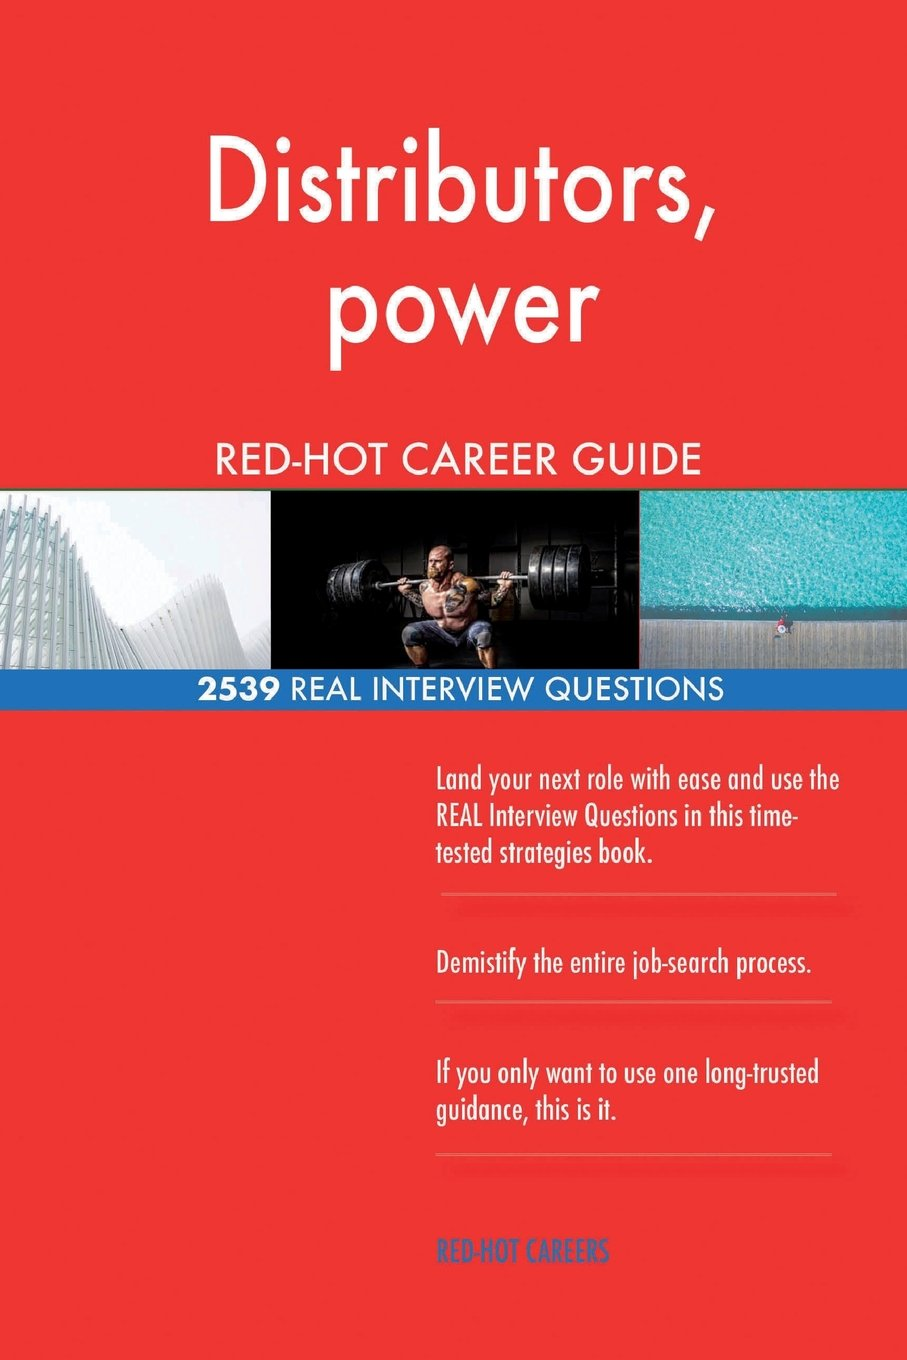 Download Distributors, power RED-HOT Career Guide; 2539 REAL Interview Questions PDF